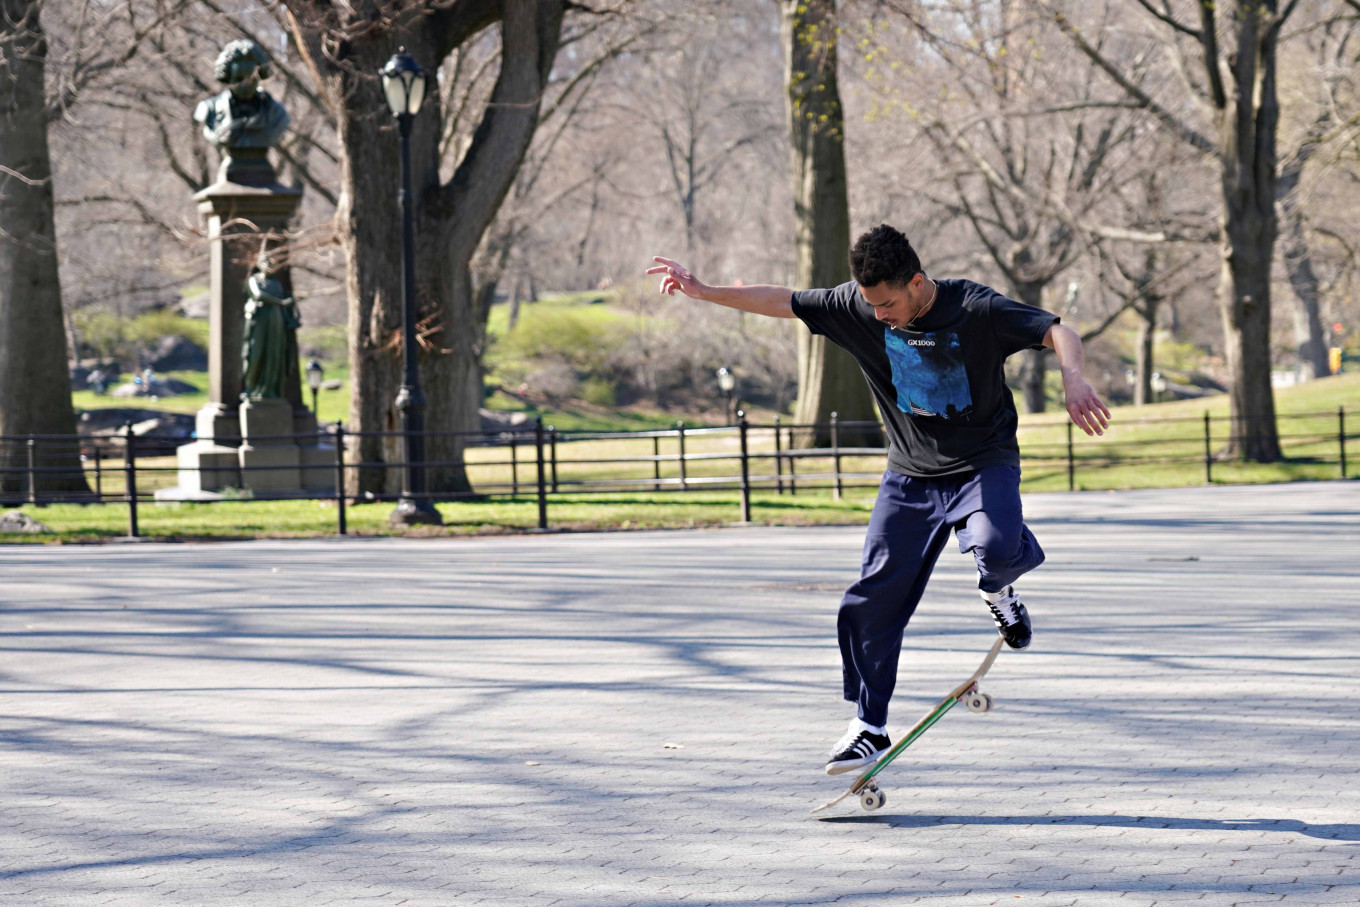 Skateboarders roam, restaurateurs fret as coronavirus fears clear New York after dark